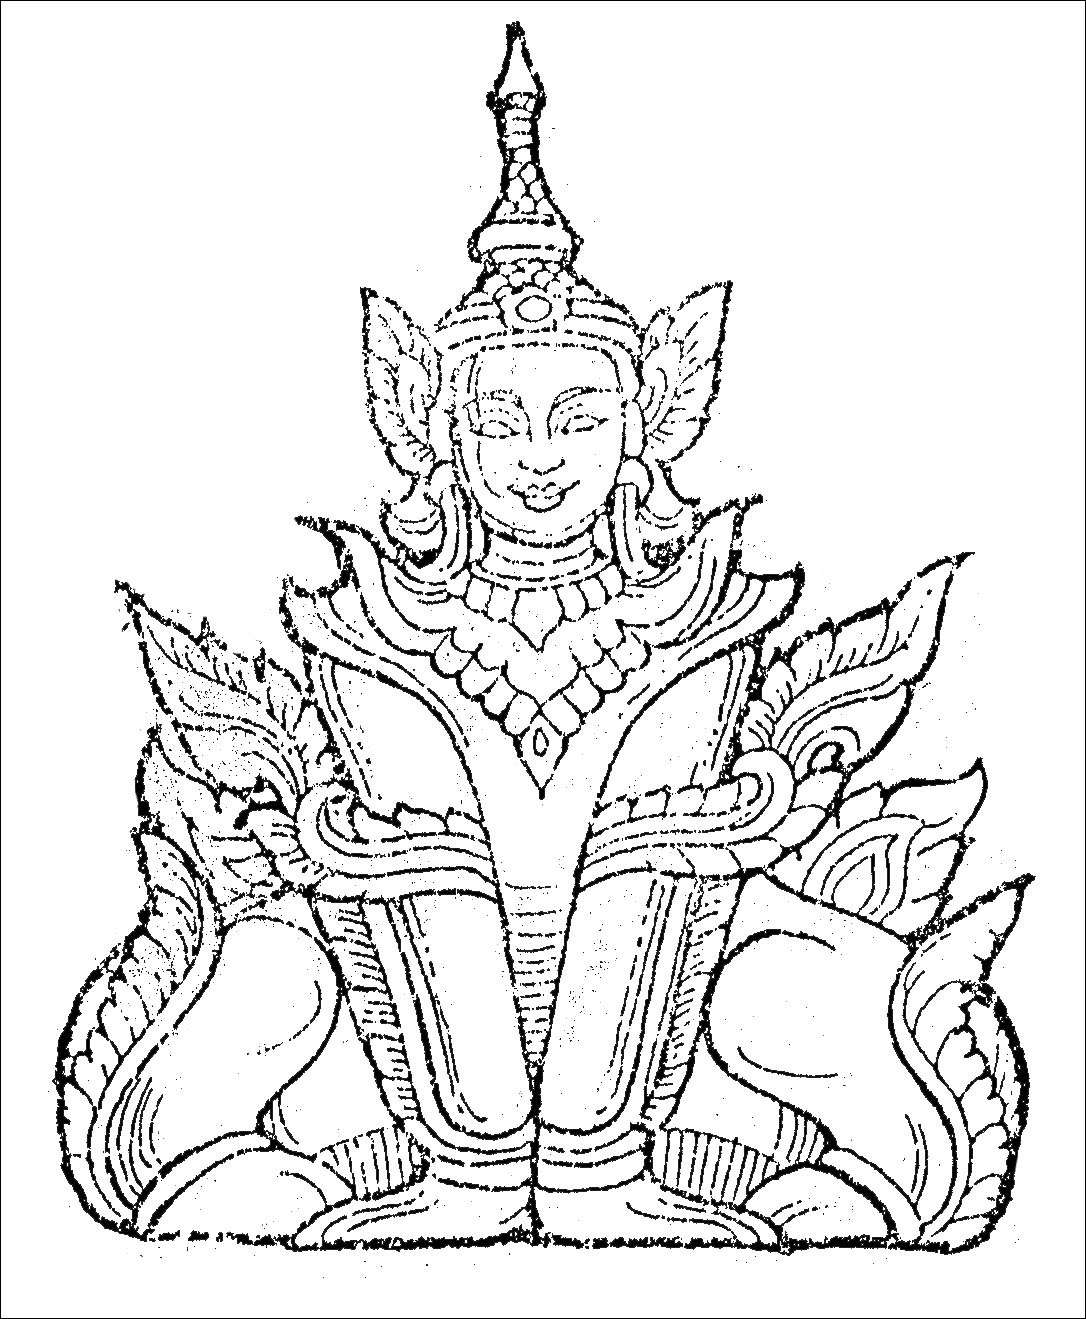 buddha black and white drawing at getdrawings com free for